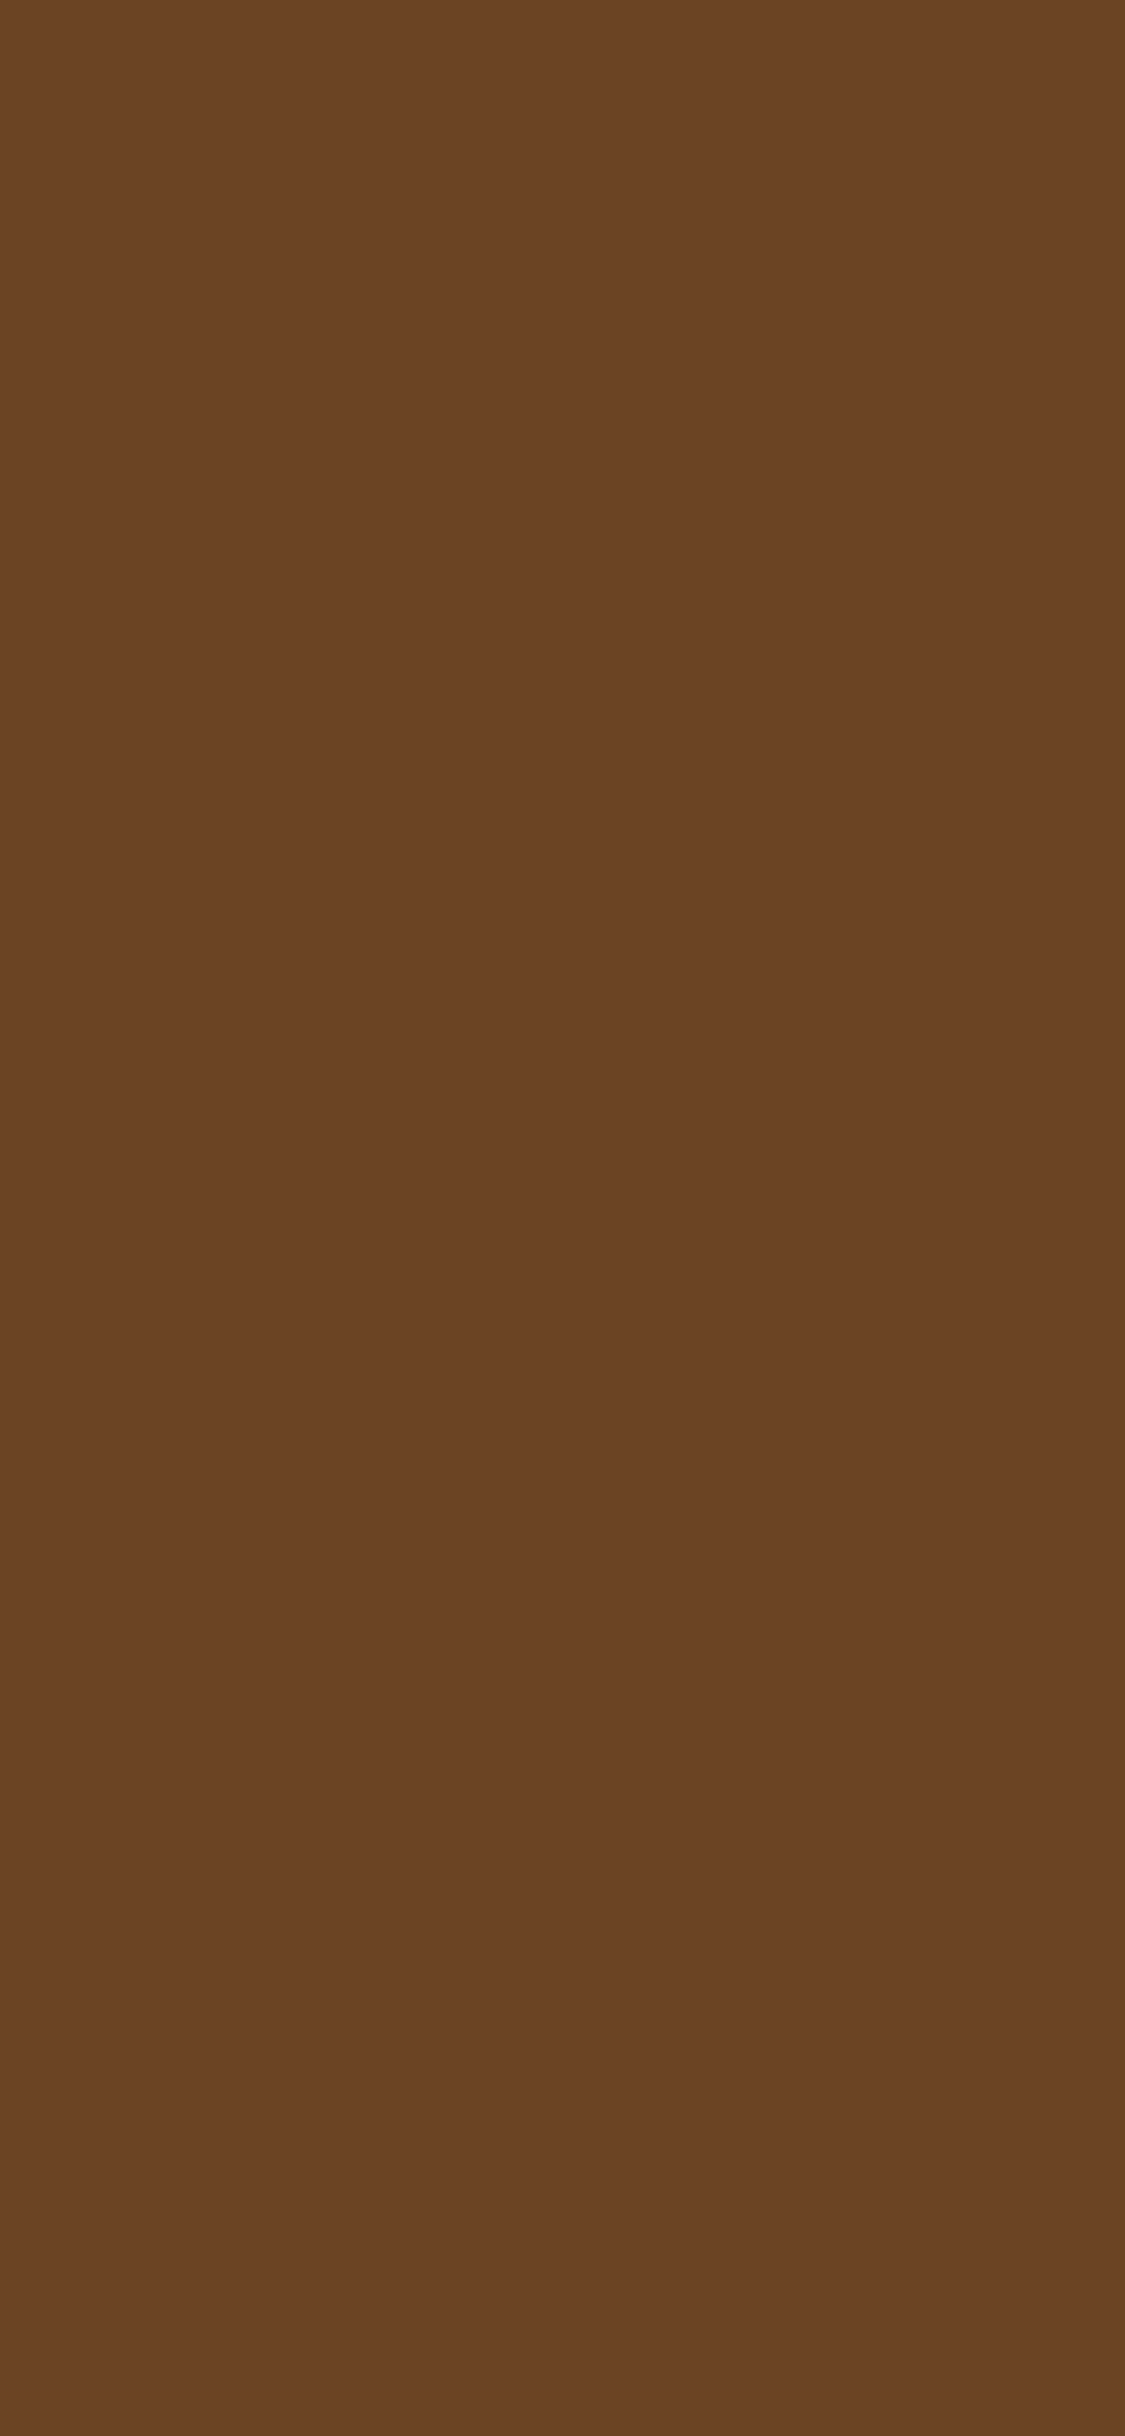 1125x2436 Brown-nose Solid Color Background